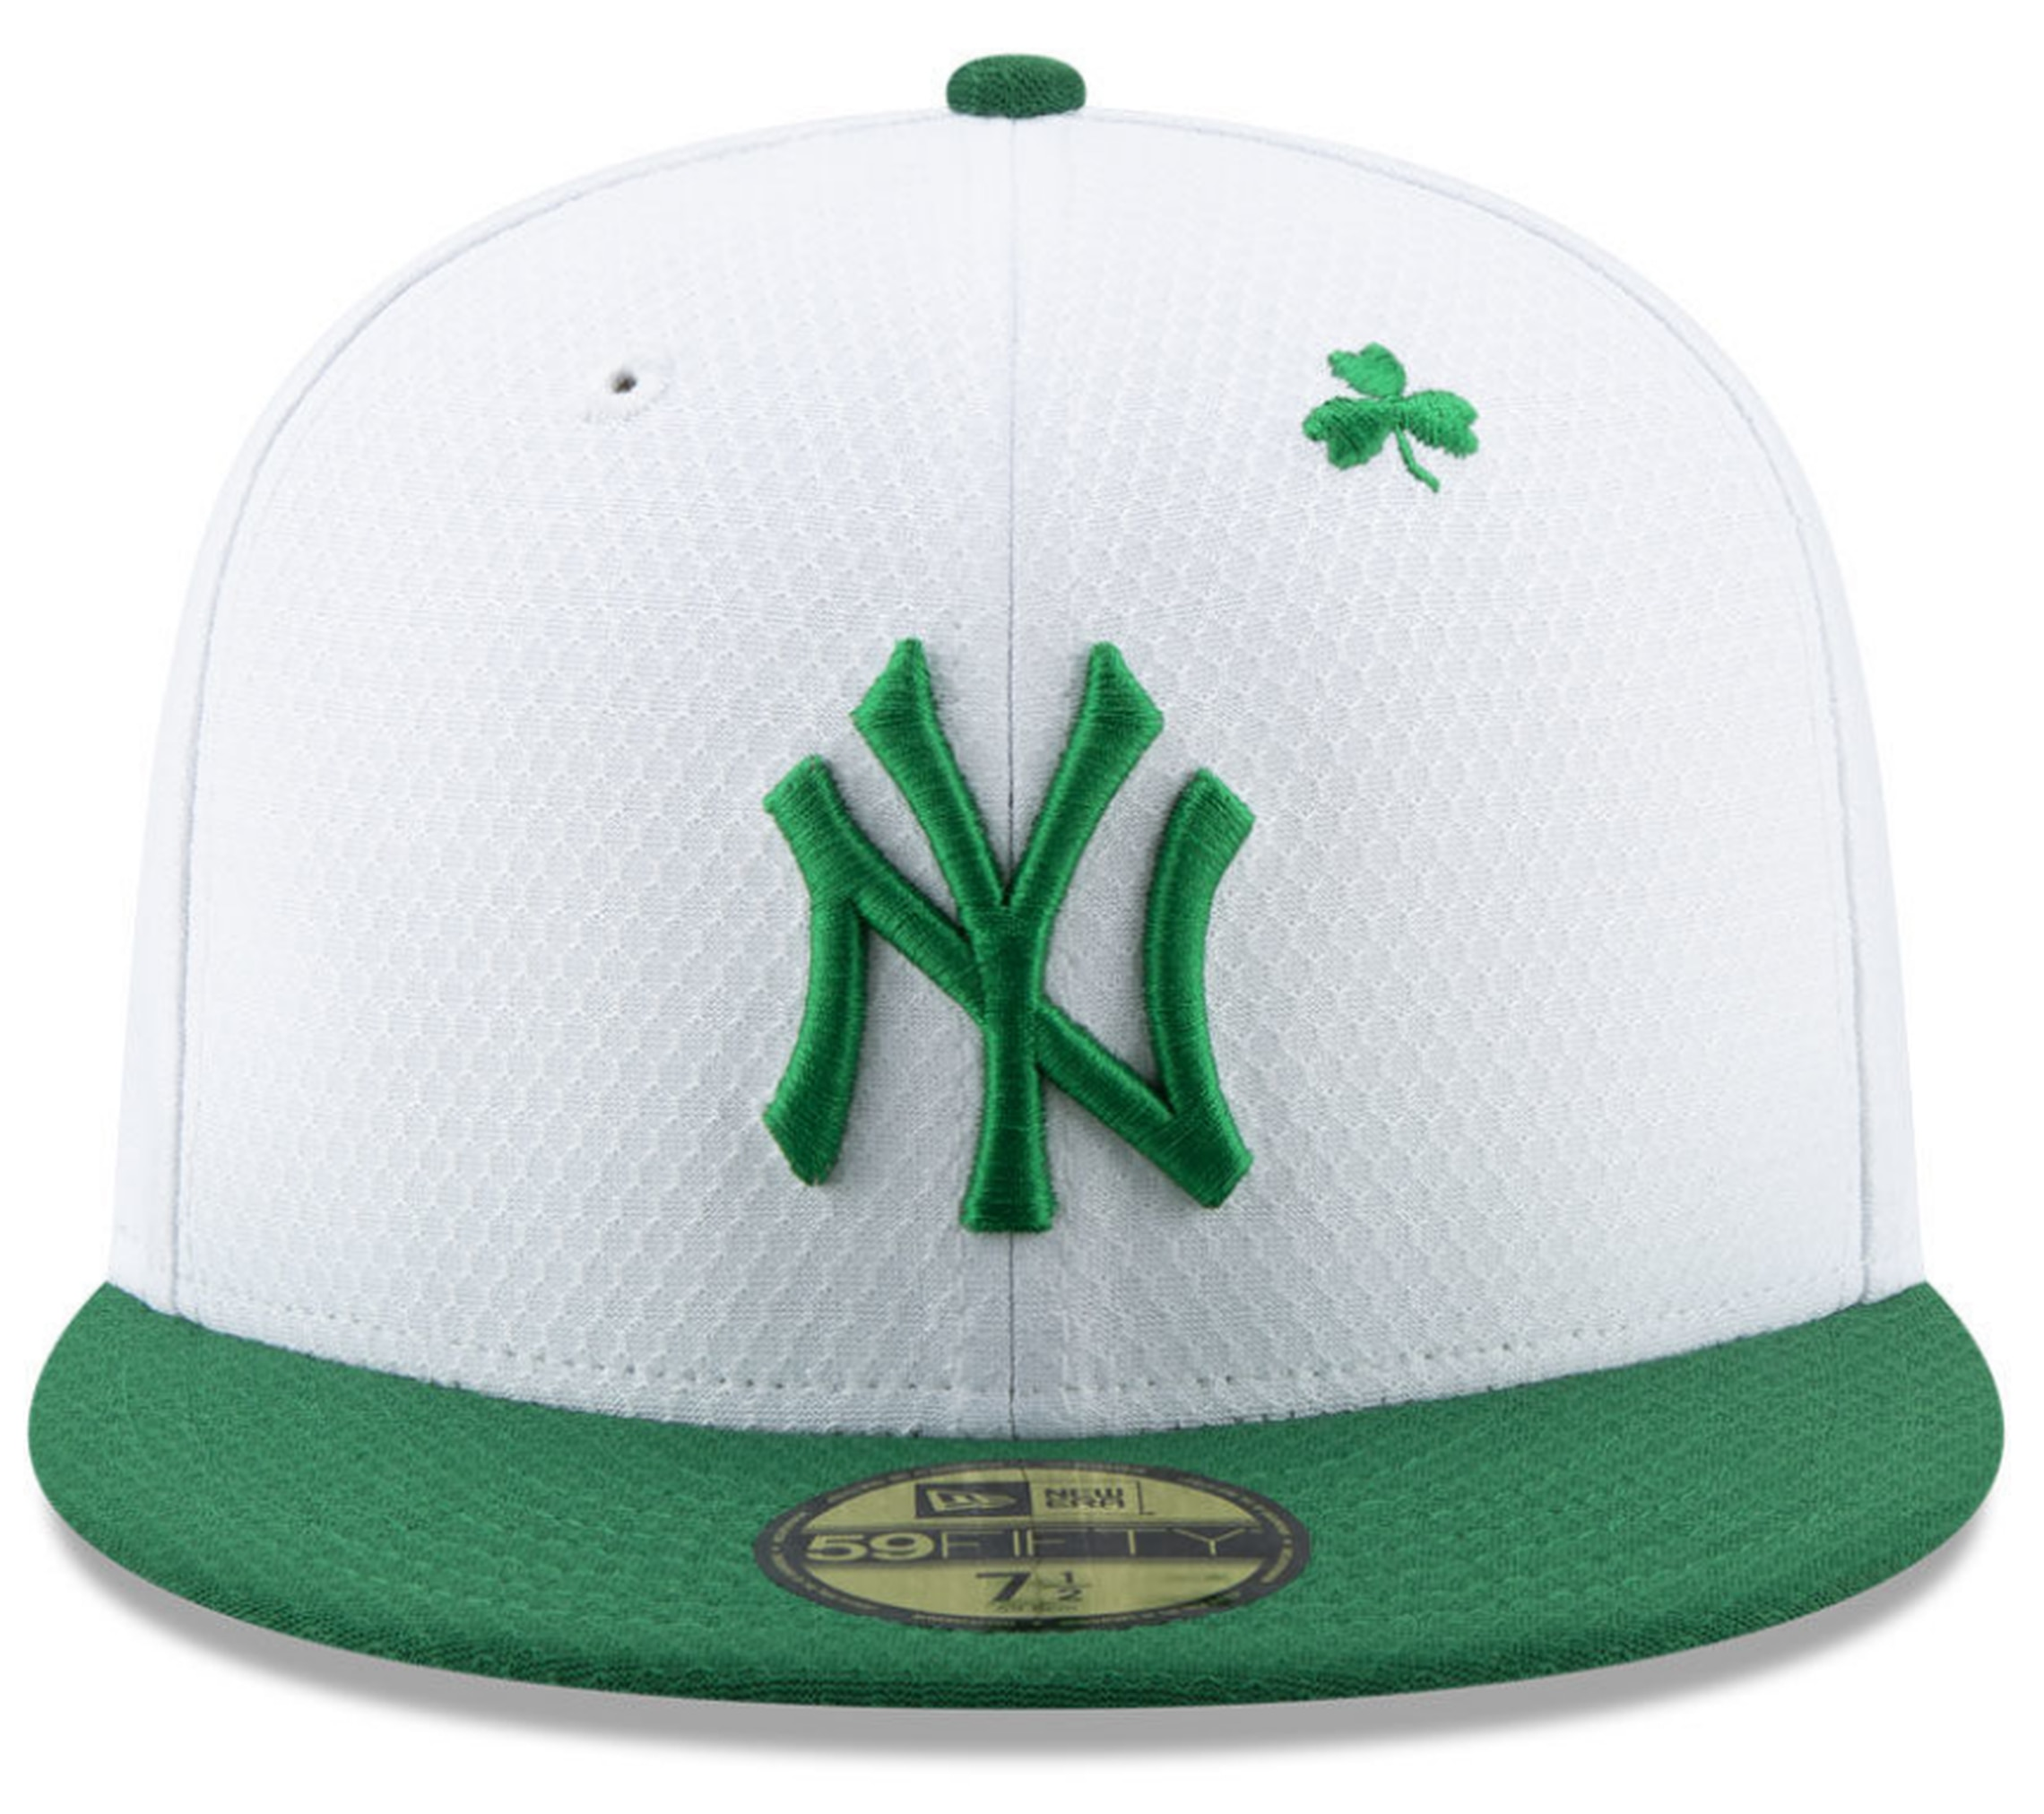 First Look Mlb S Onfield 2019 St Patrick S Day Caps